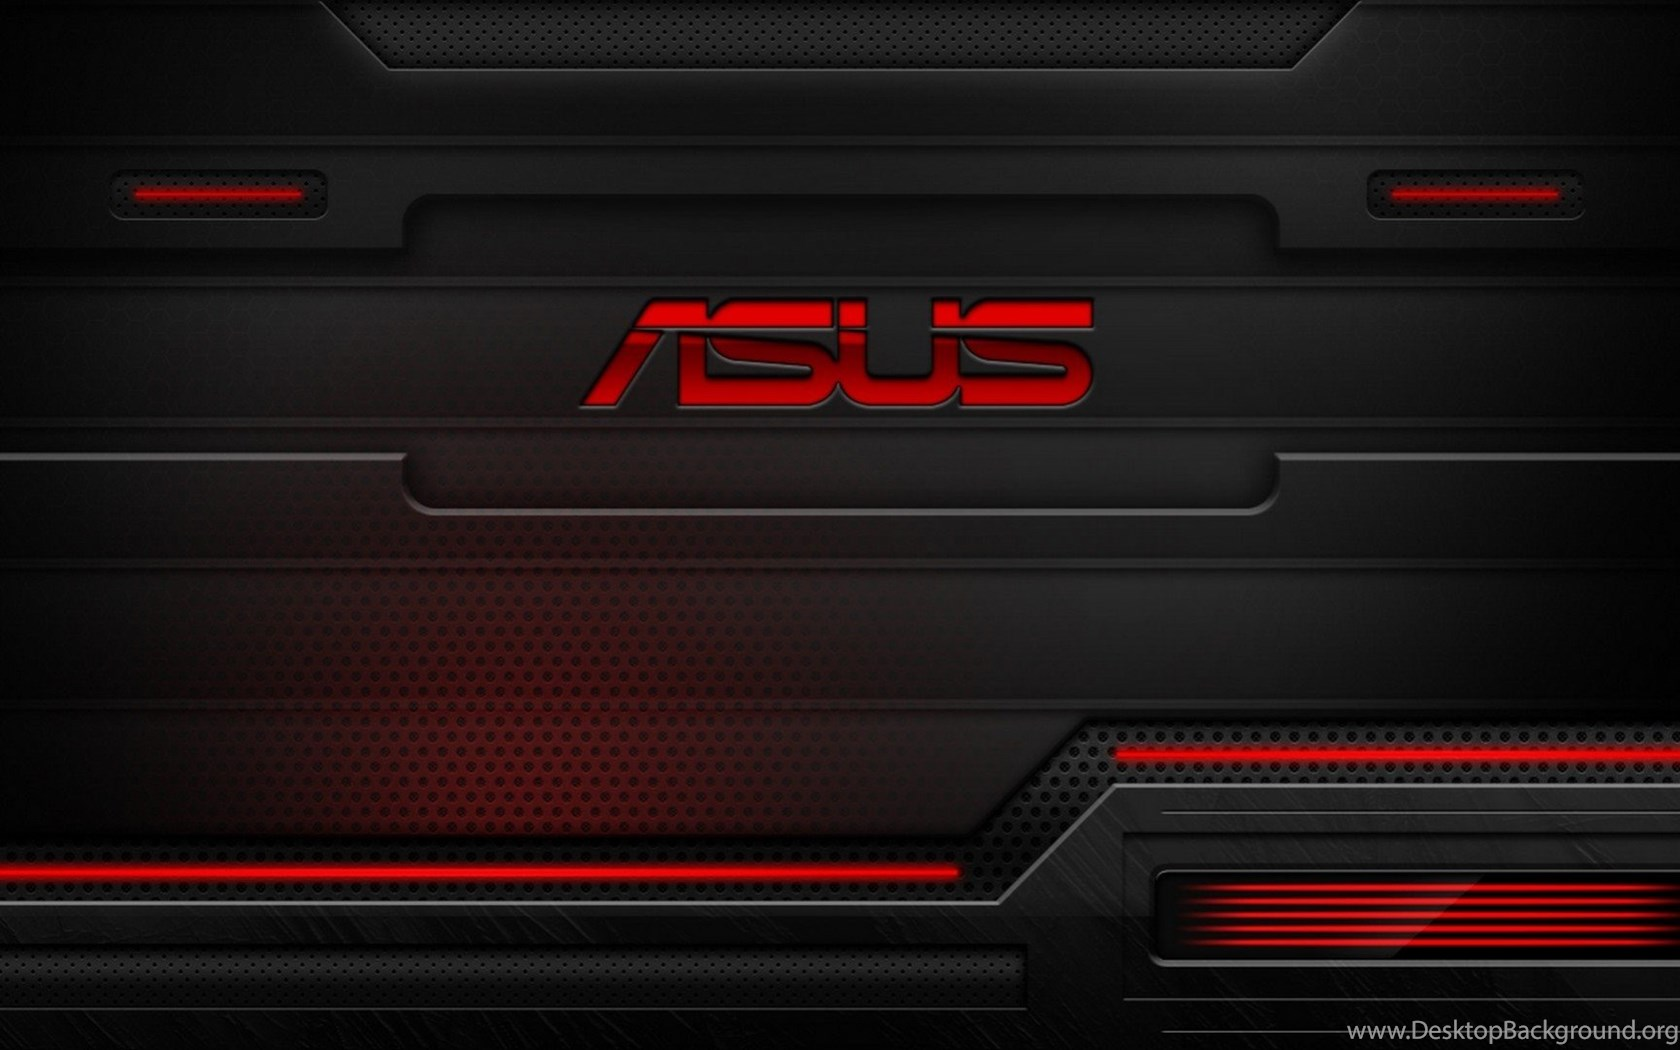 Asus Wallpapers Widescreen: HD Red And Black Asus Technology Wallpapers For Desktop